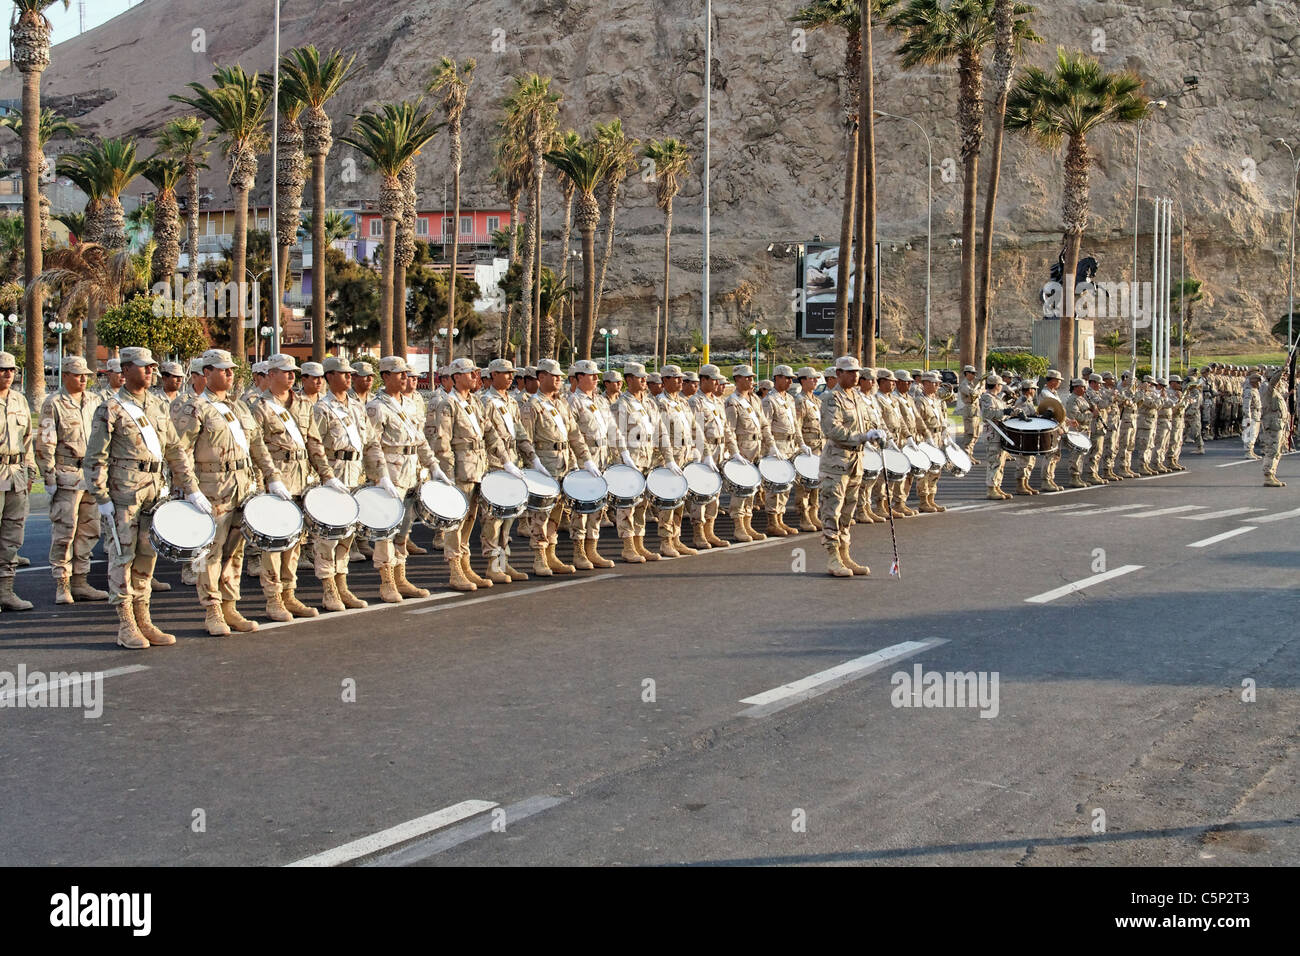 Parade exercise for the national holiday in Arica, Chile, South America - Stock Image